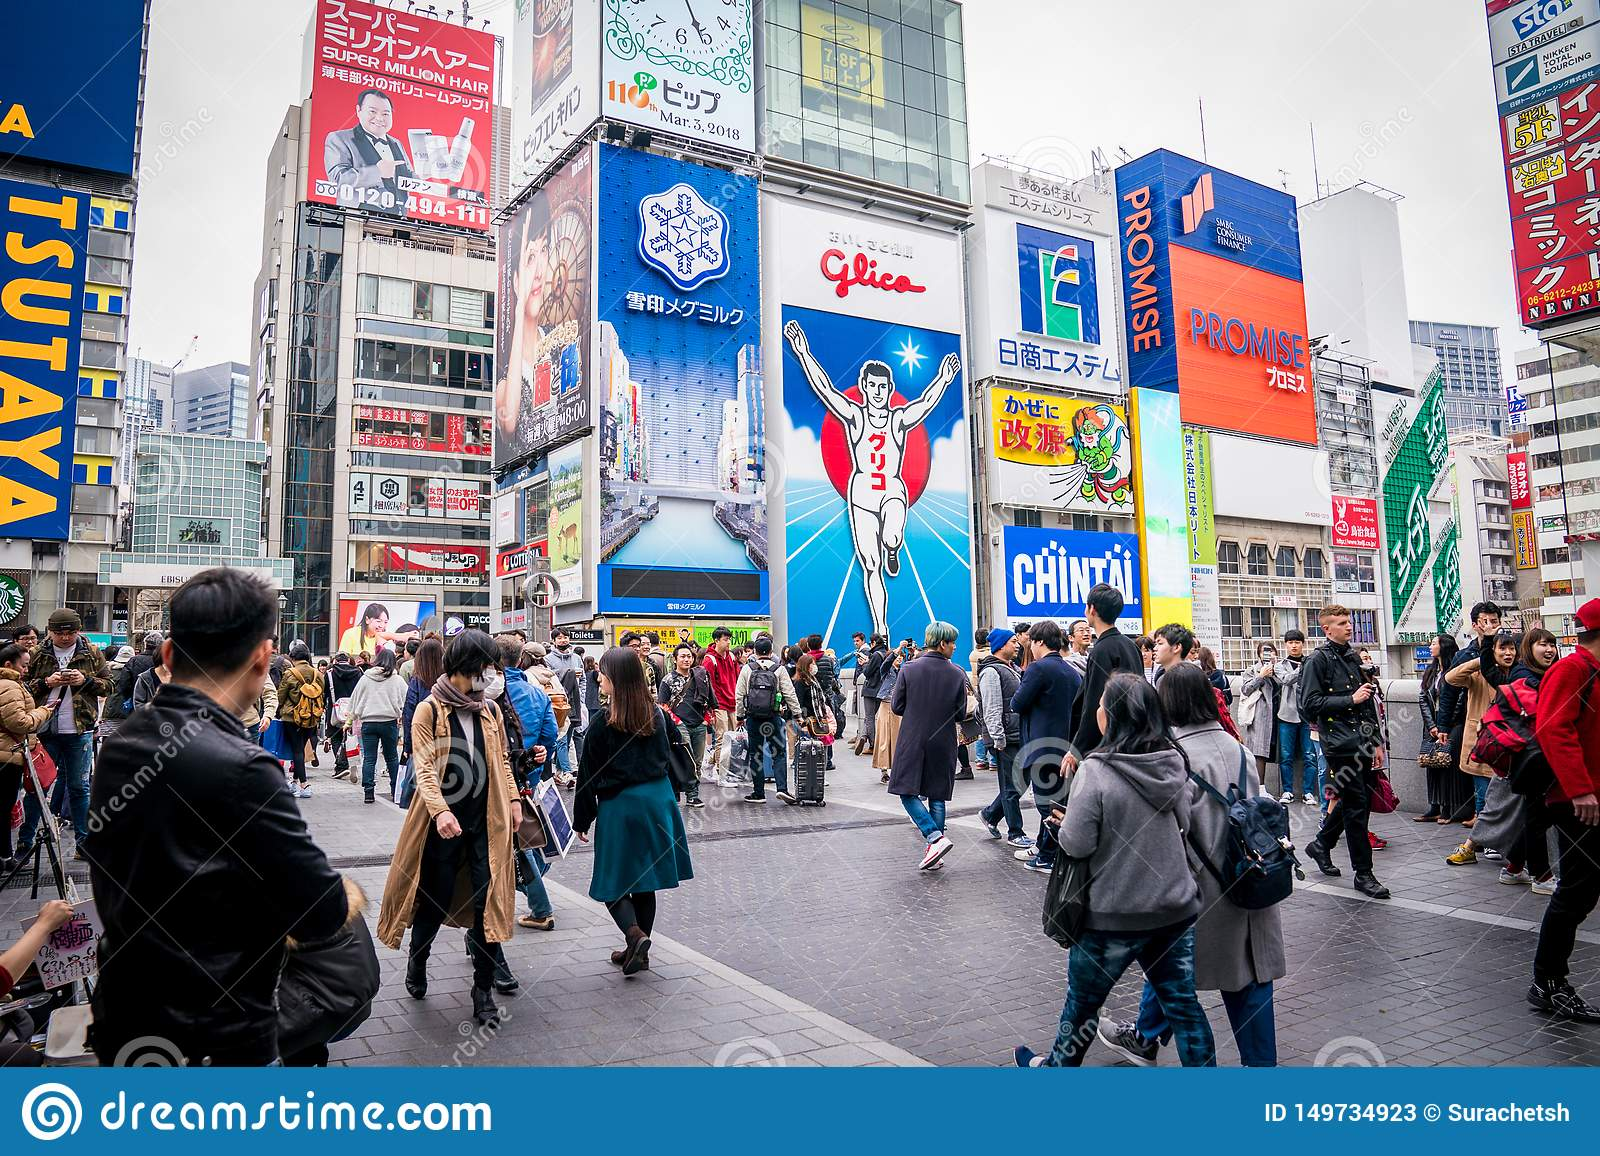 Osaka, Japan - 3 Mar 2018: The Gulico man digital signage billboard is the popular landmark / tourist attraction in the noon at